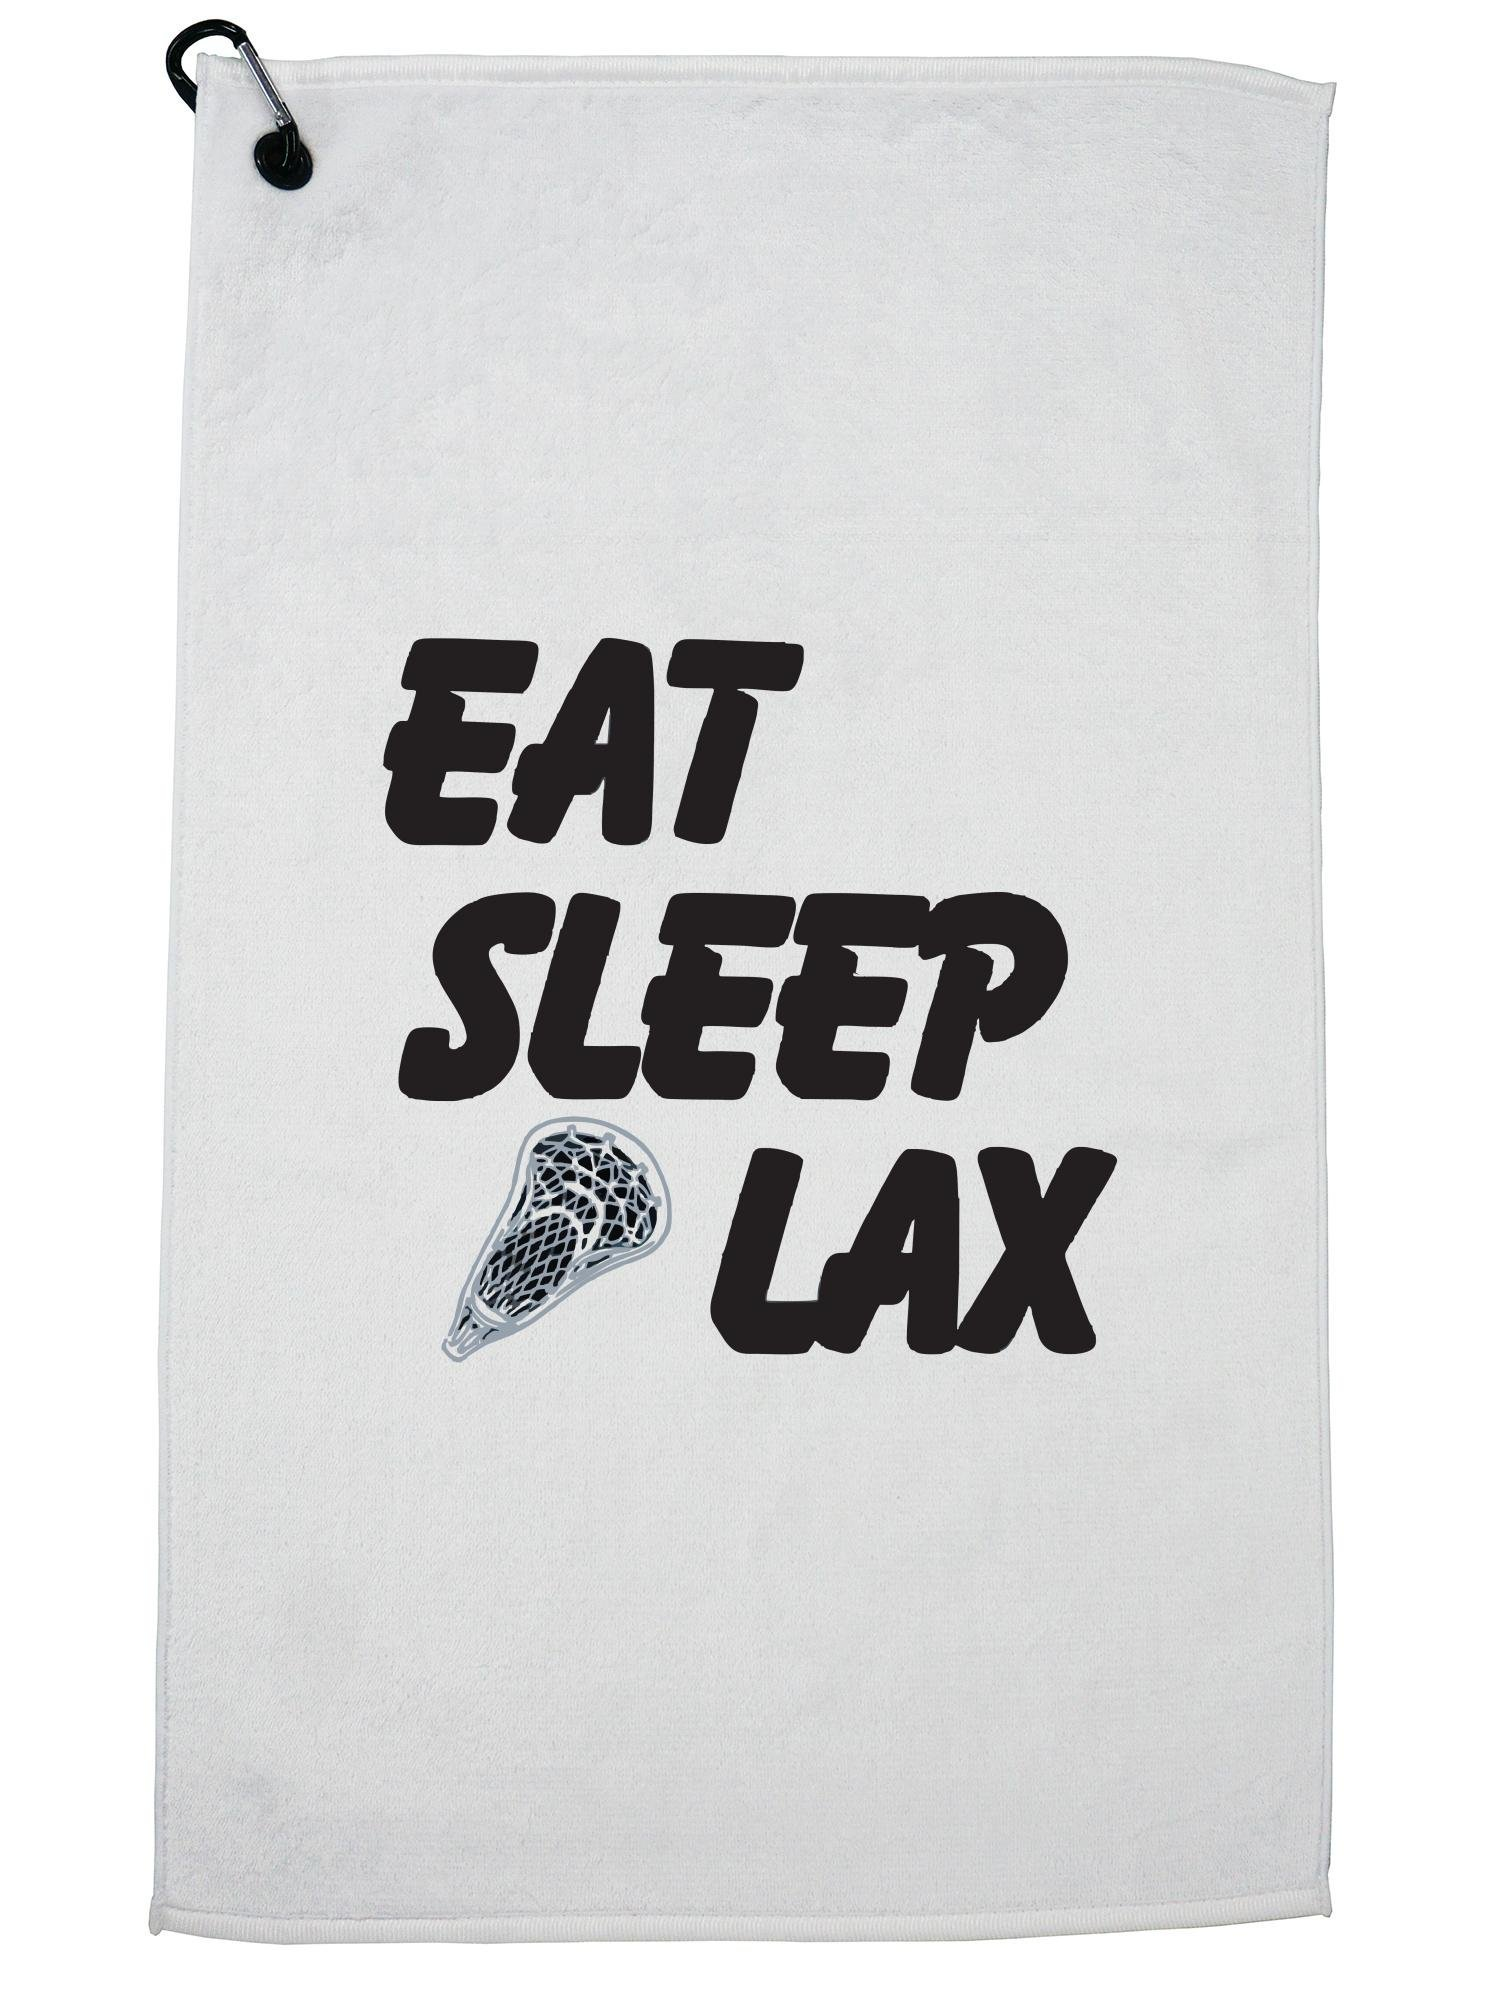 Hollywood Thread Eat Sleep Lax Graphic Lacrosse Player Trendy Design Golf Towel with Carabiner Clip